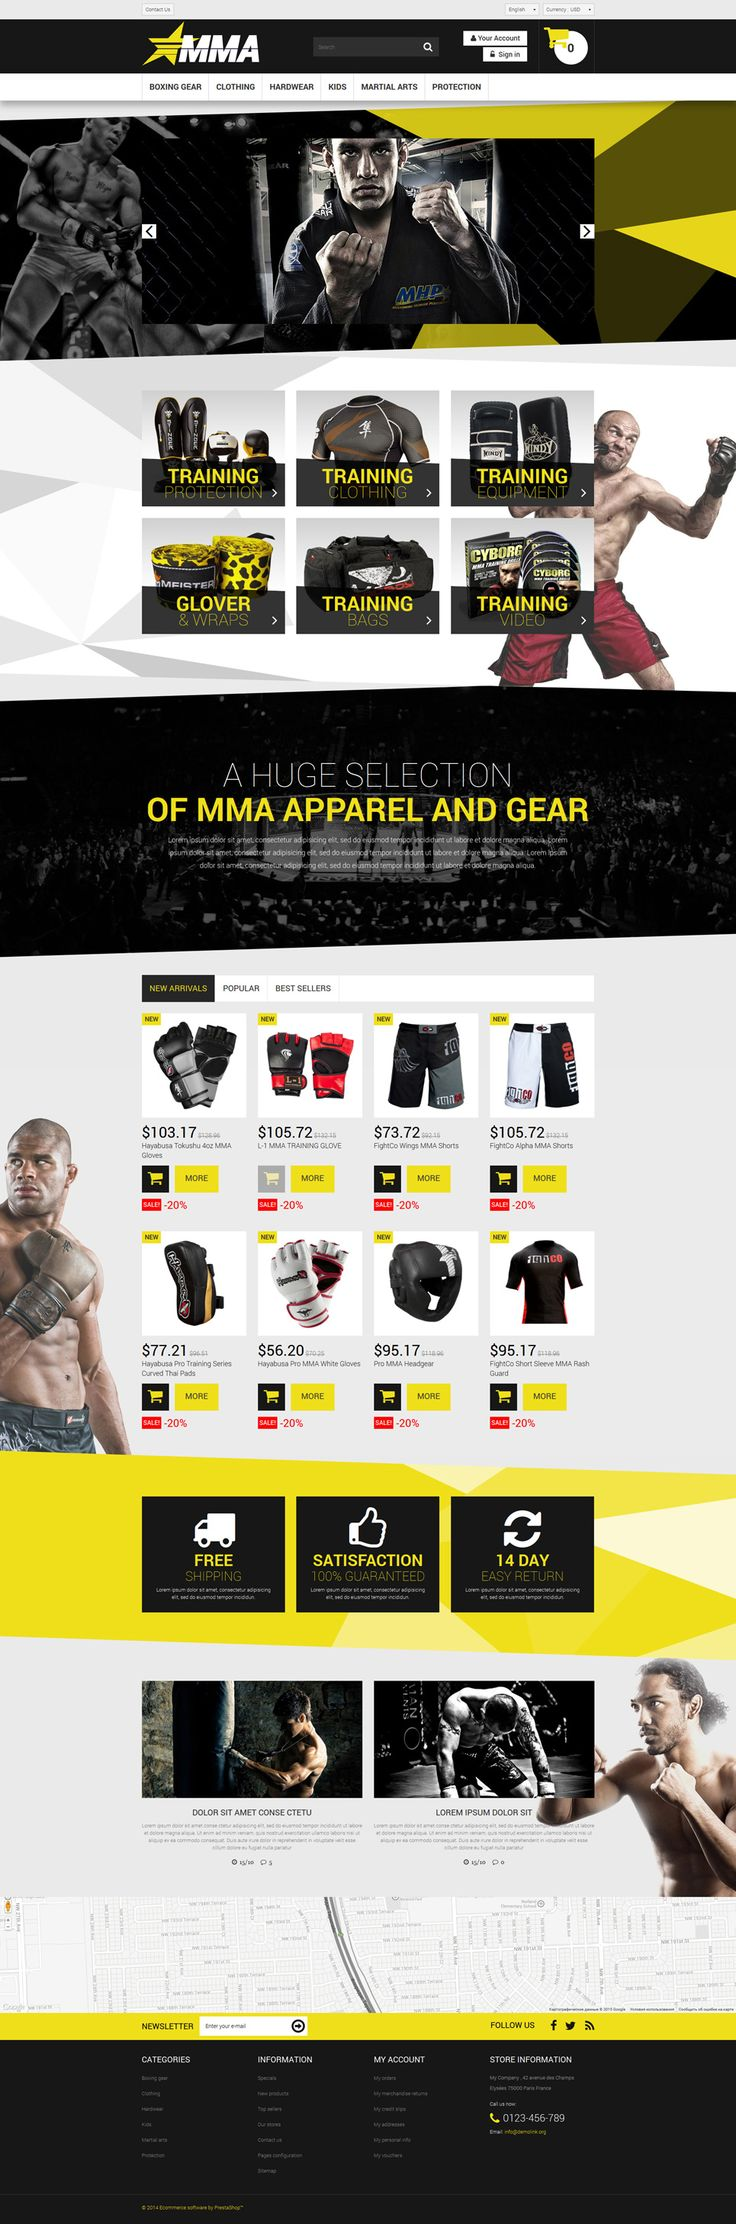 12+ Sports Shop Clothing & Accessories Ecommerce Website Templates (Sports Store PrestaShop Themes) - MMA Store Learn more @ https://buildify.cc/sports-store-prestashop-themes/